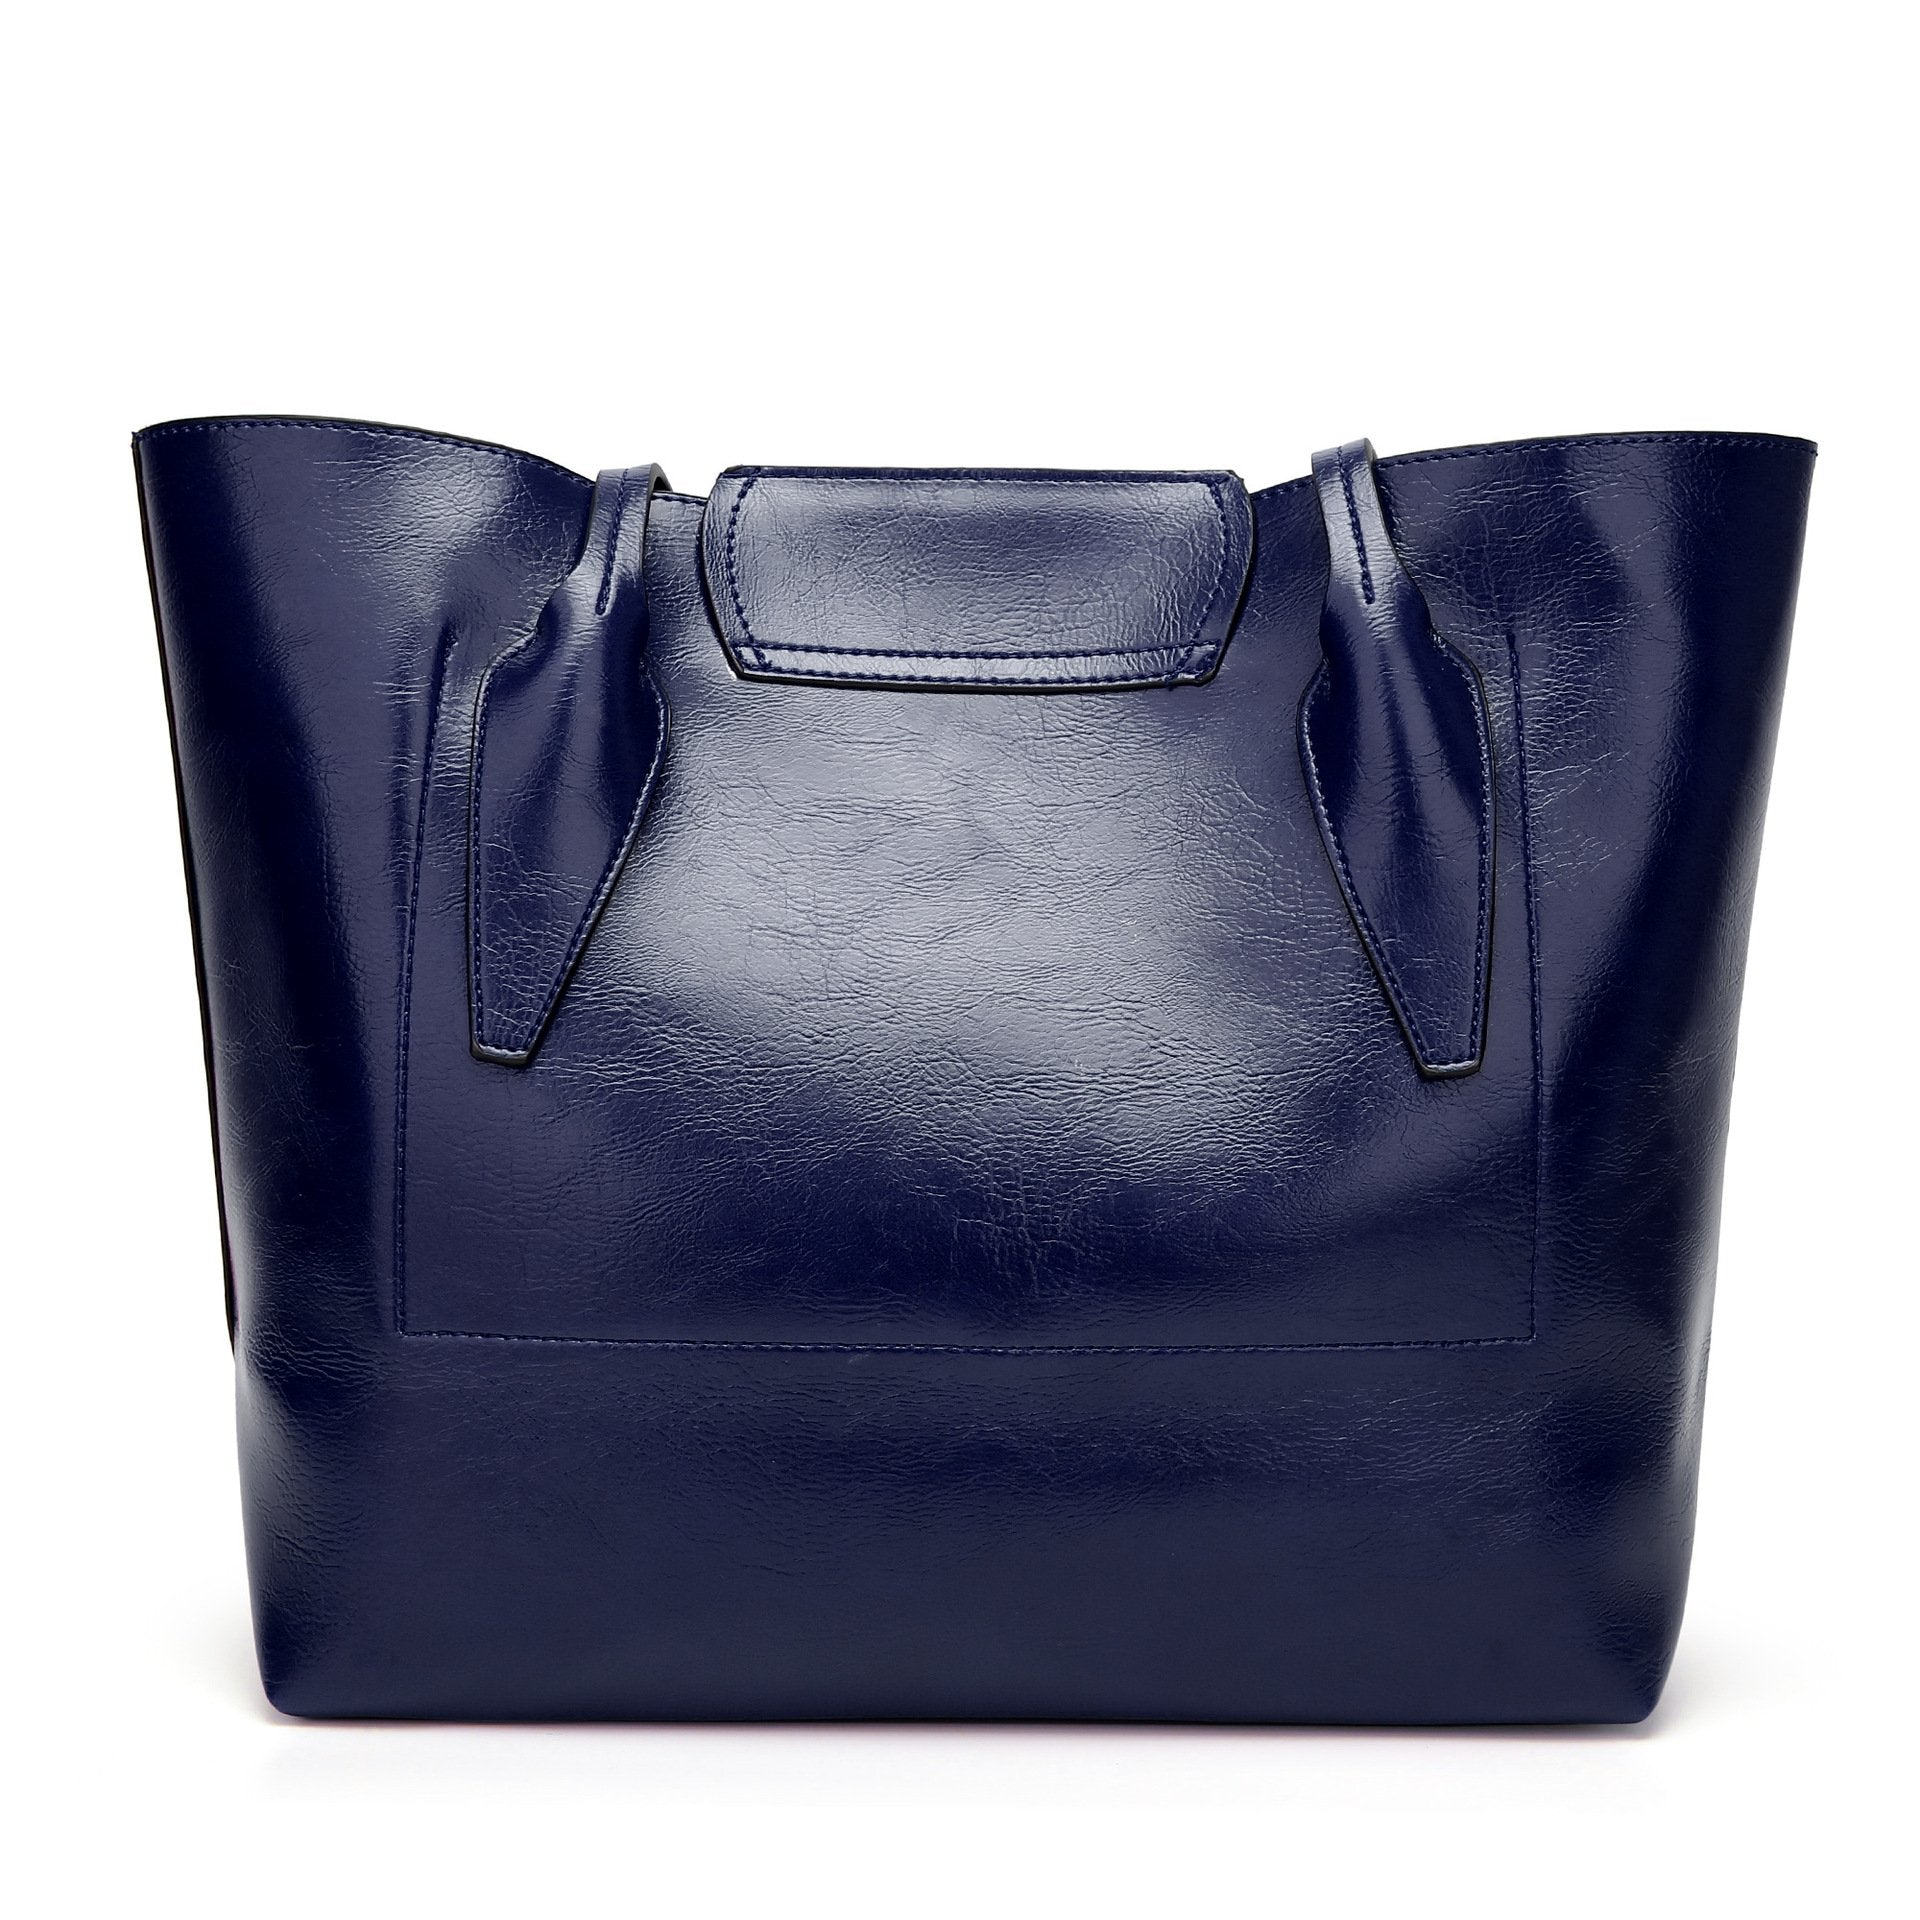 New Autumn Casual Handbag - monaveli - bag - New Autumn Casual Handbag - mymonaveli.com